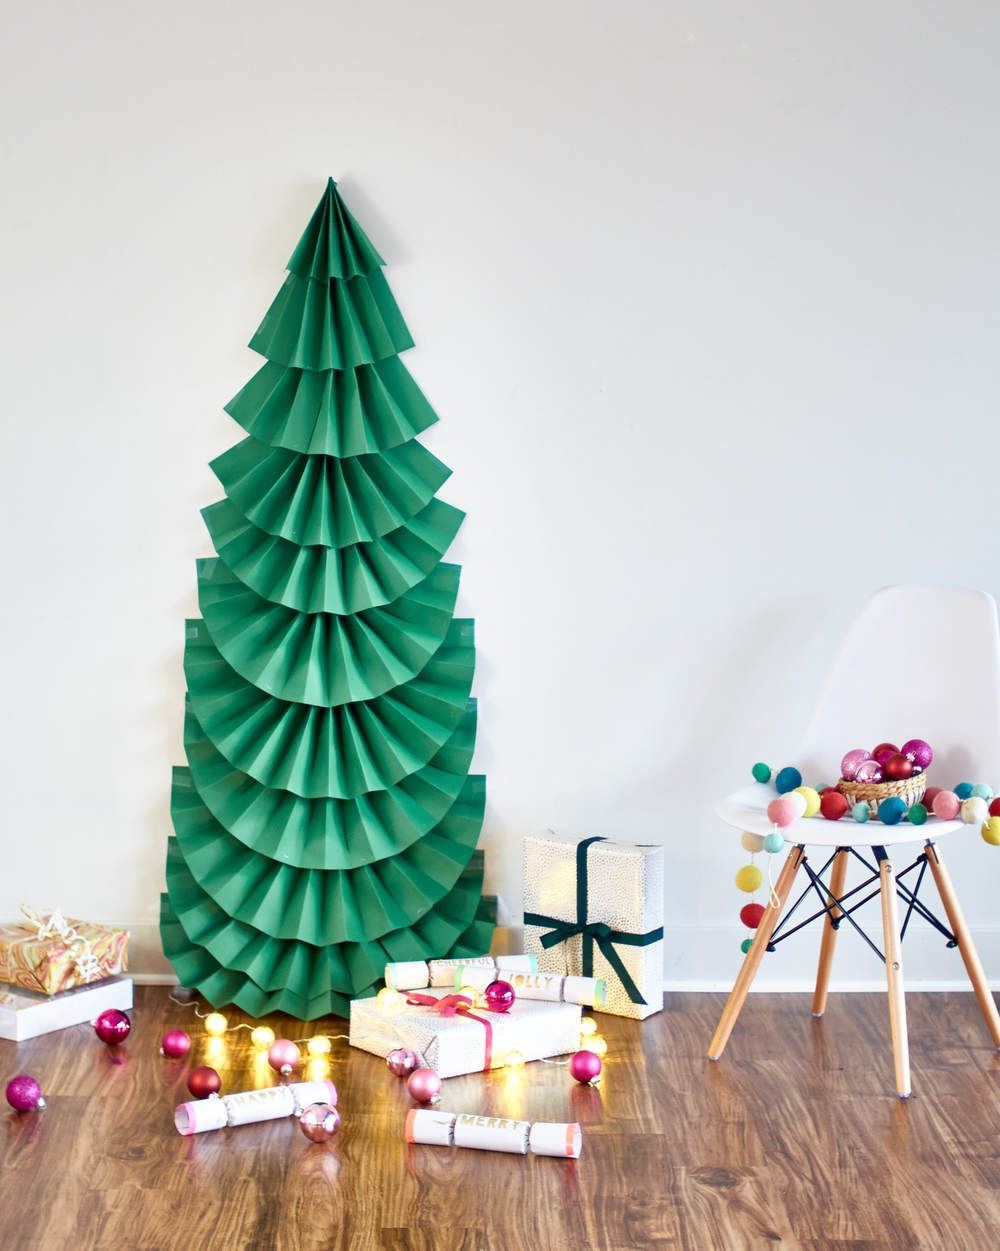 Make It Diy Life Sized Folded Paper Christmas Tree Diy Paper Christmas Tree Alternative Christmas Tree Diy Christmas Tree